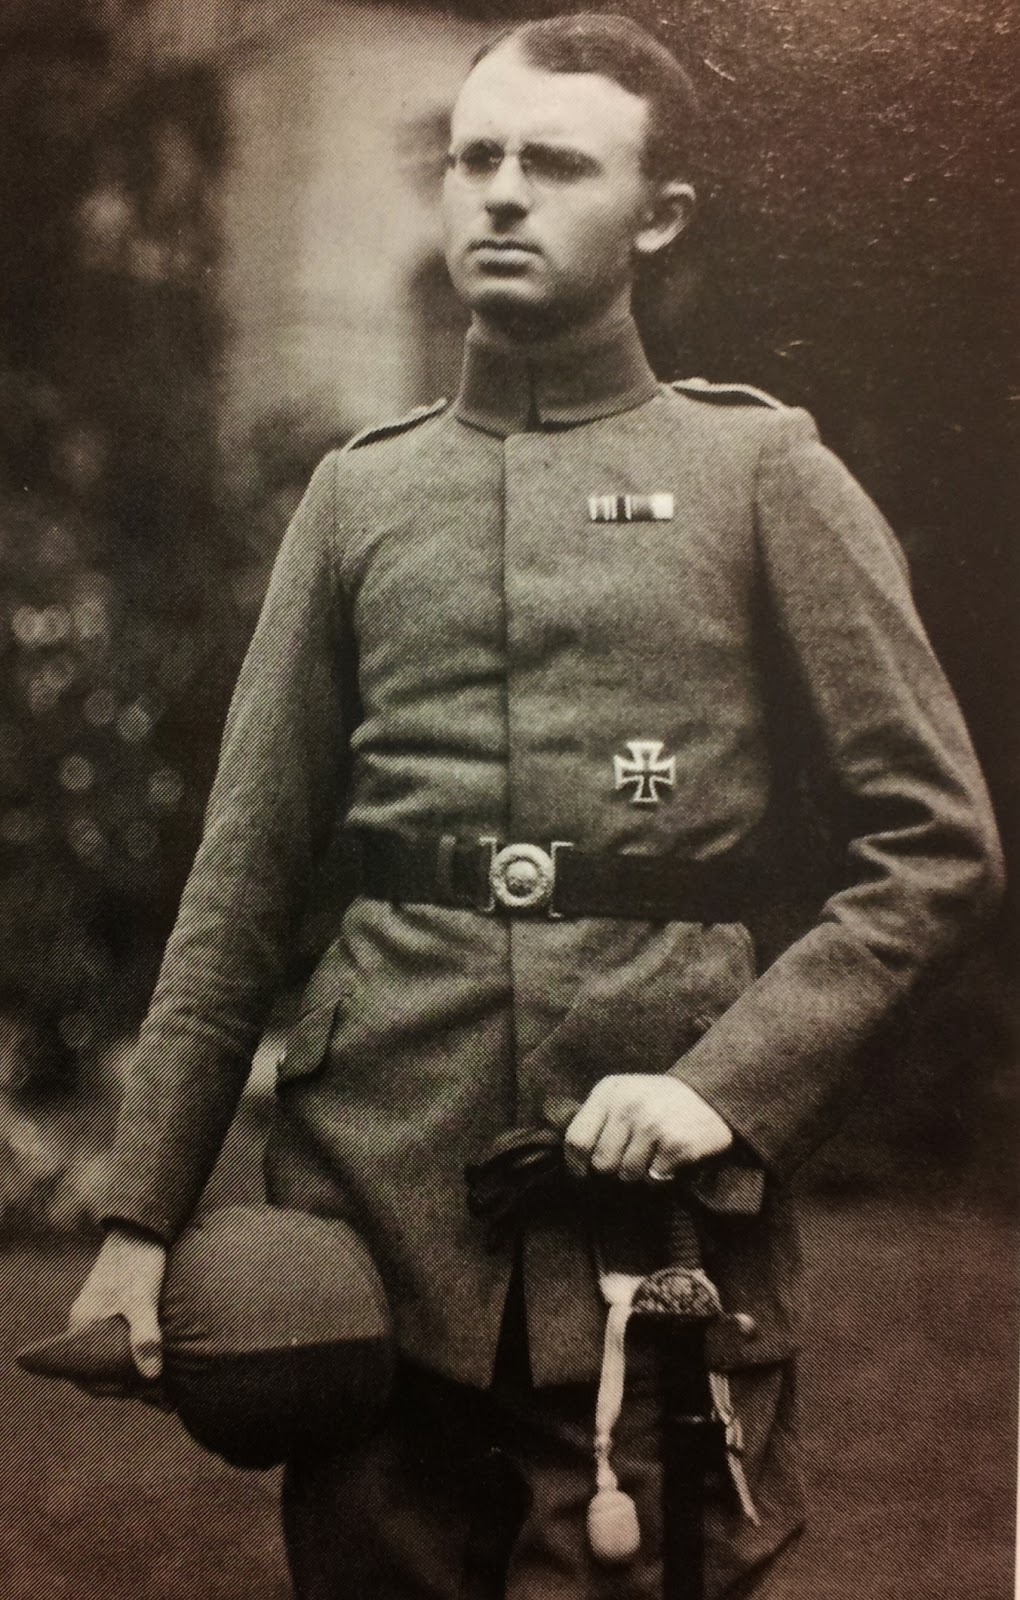 Wilhelm Eduard Koch (William Edward Hinchley Cooke)  dressed in a German uniform for undercover work in POW camps.  (From Defence of the Realm)